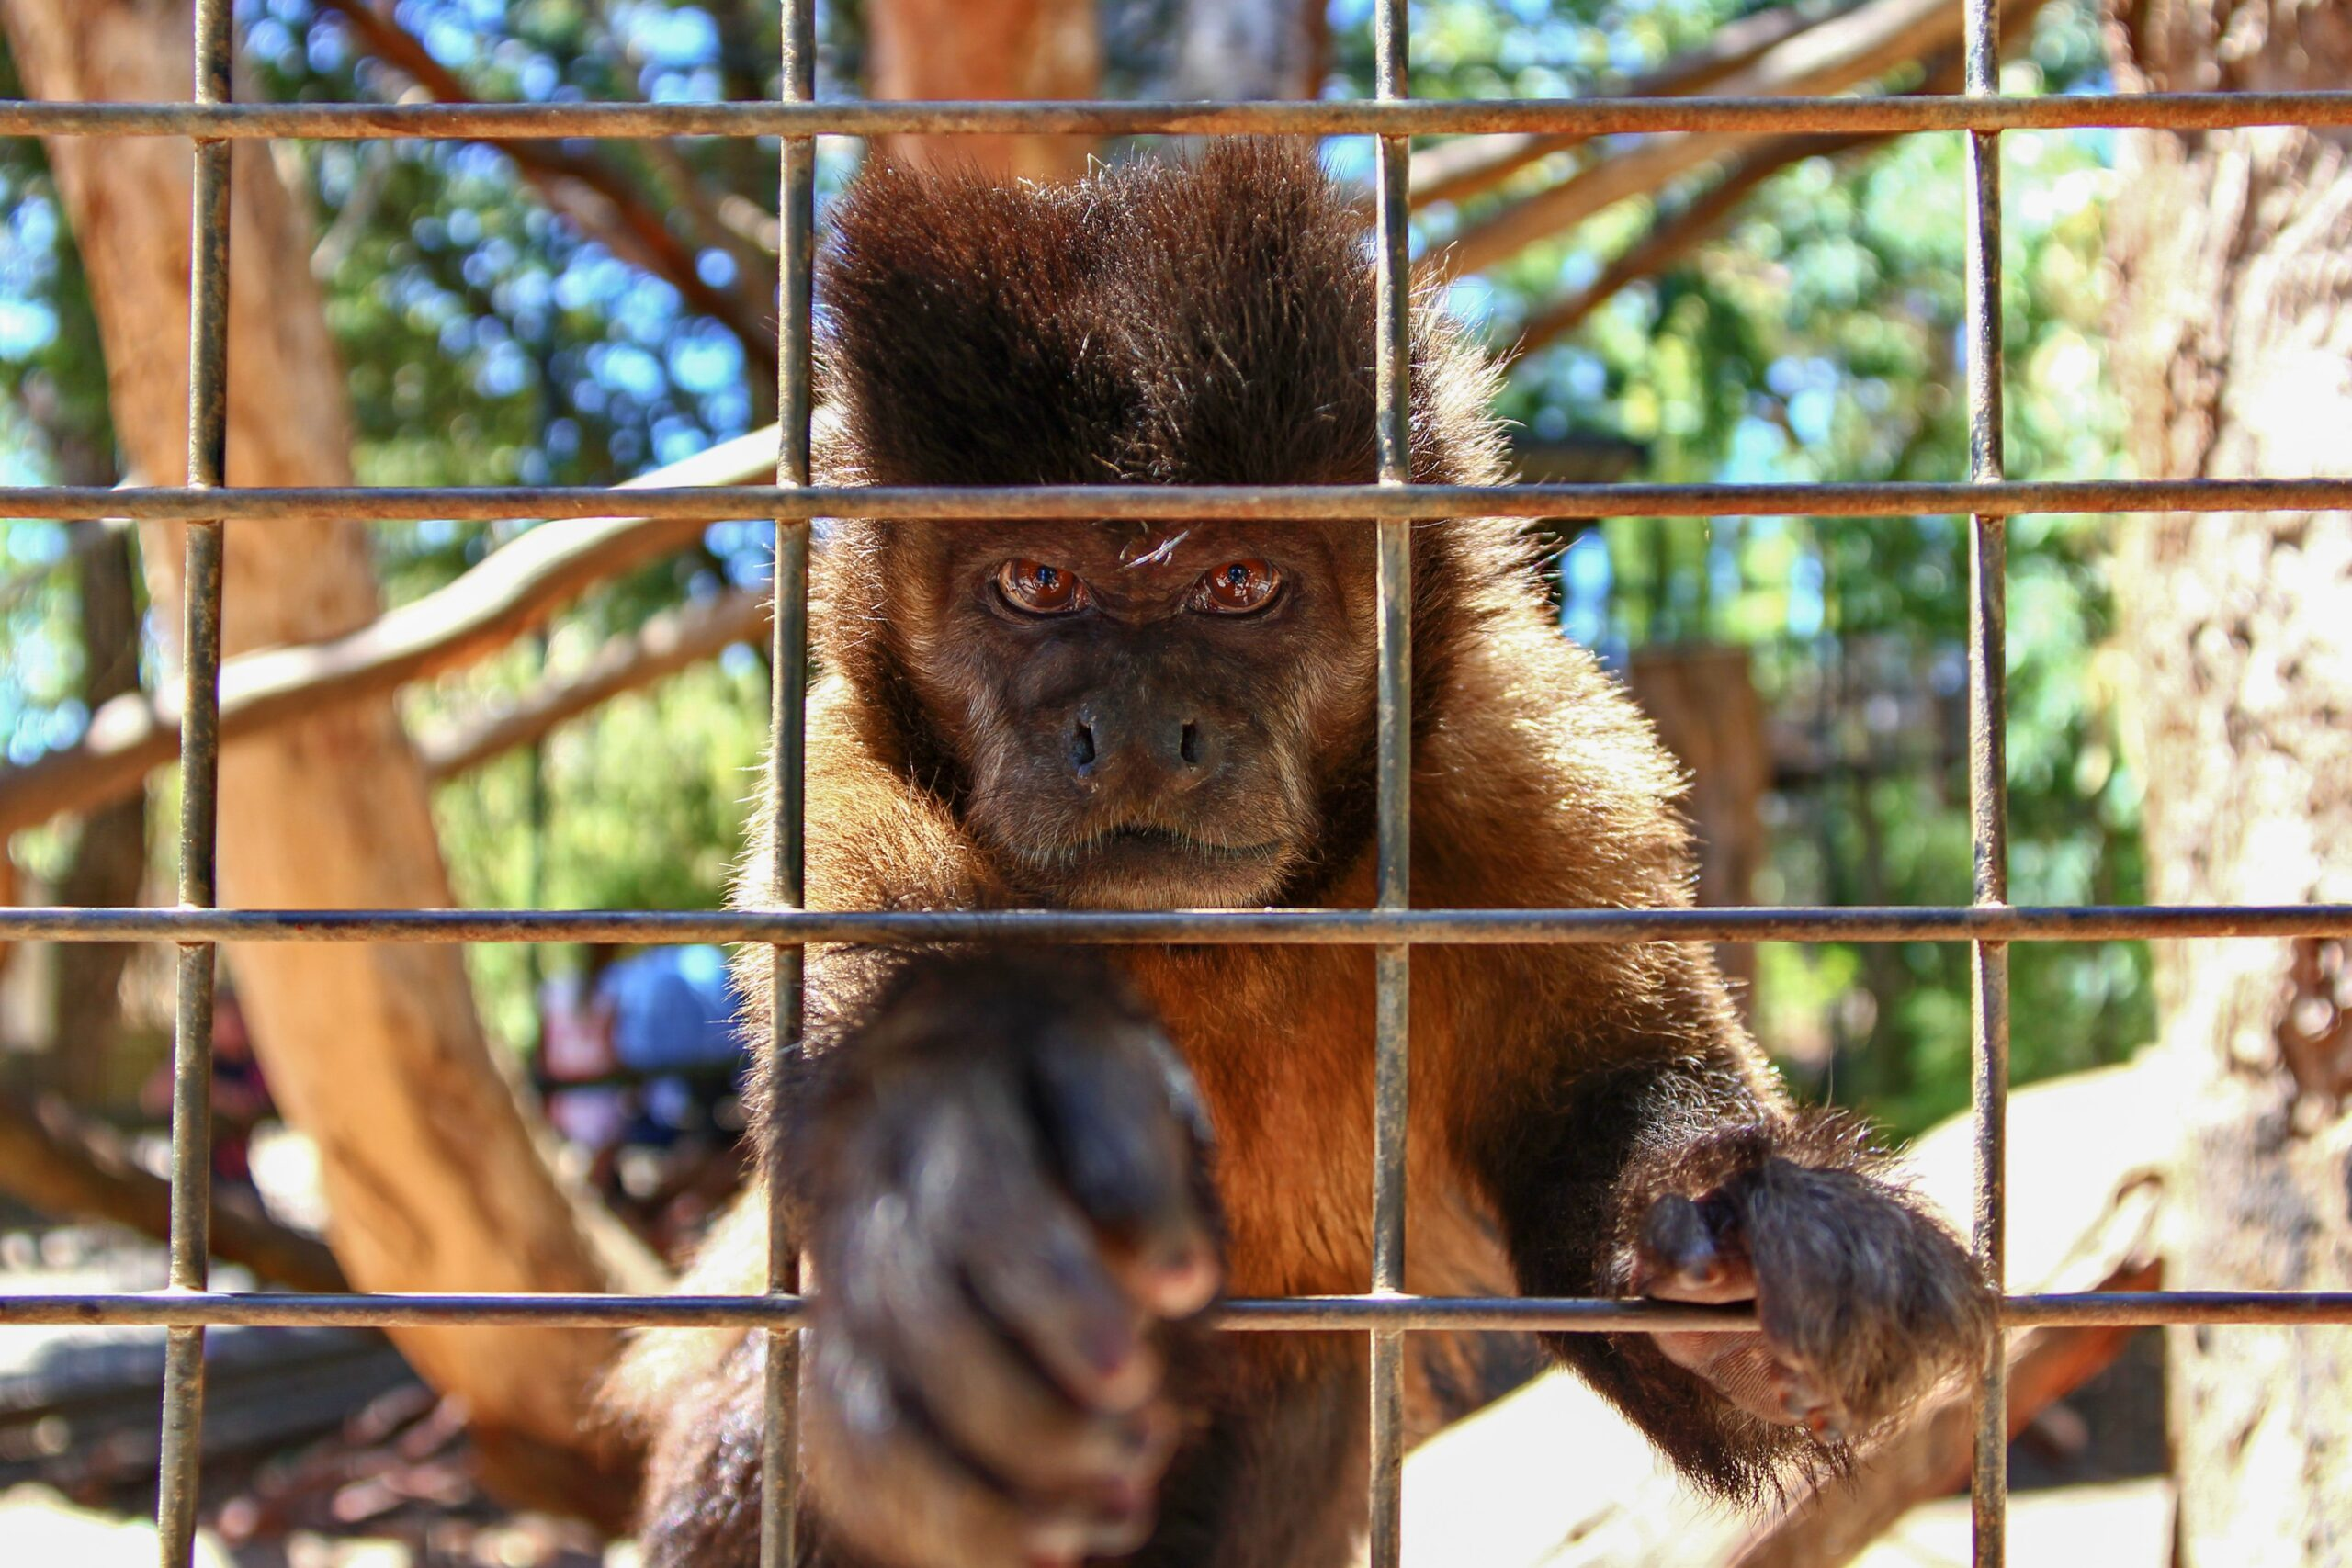 Small monkey on a cage